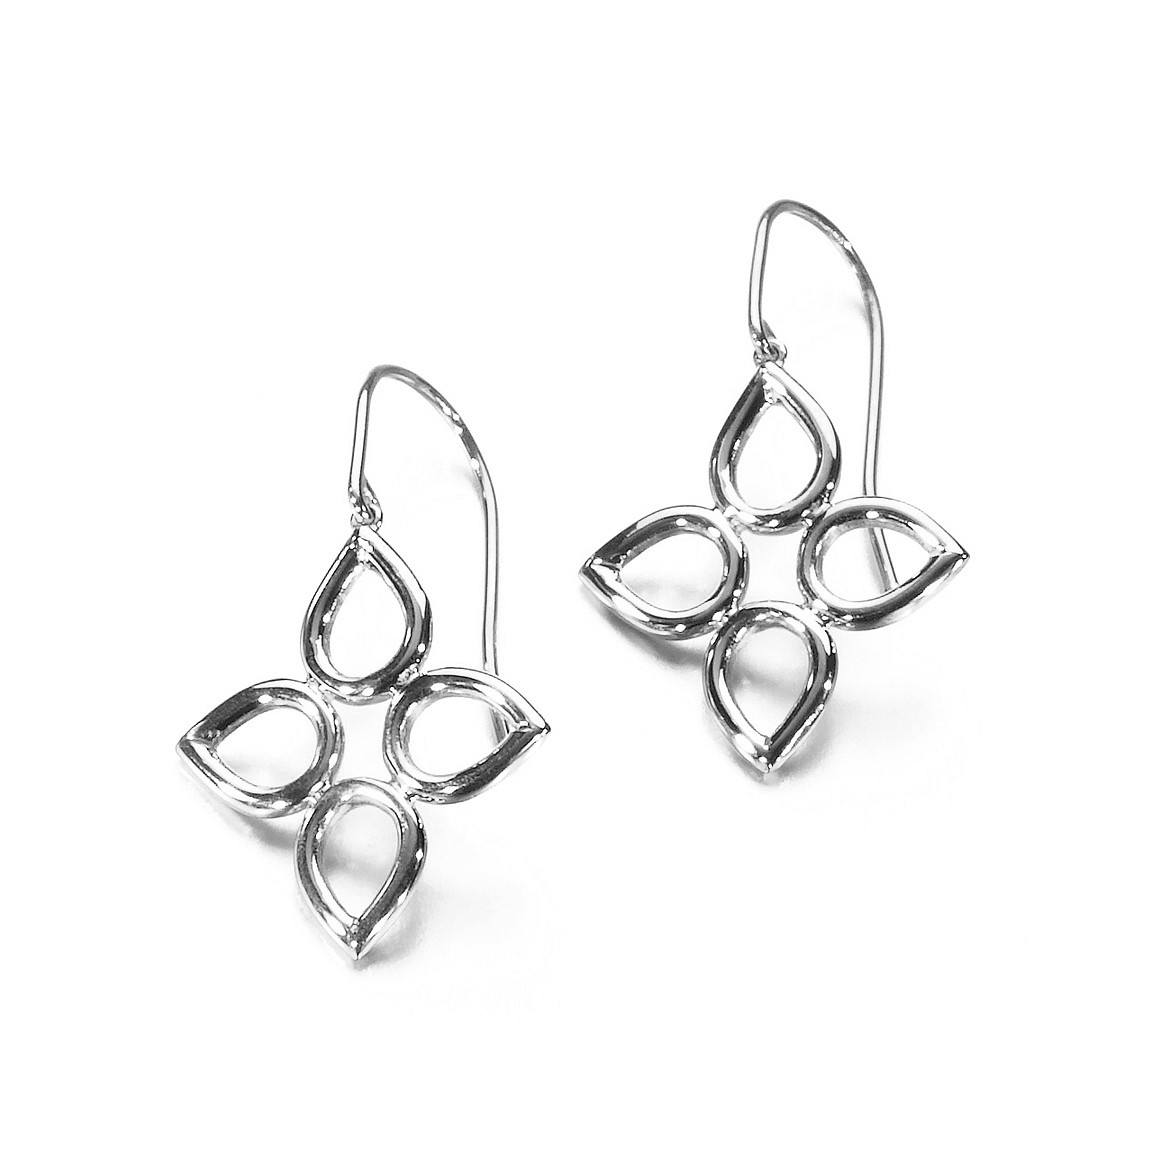 Sevilla wire earrings in sterling silver